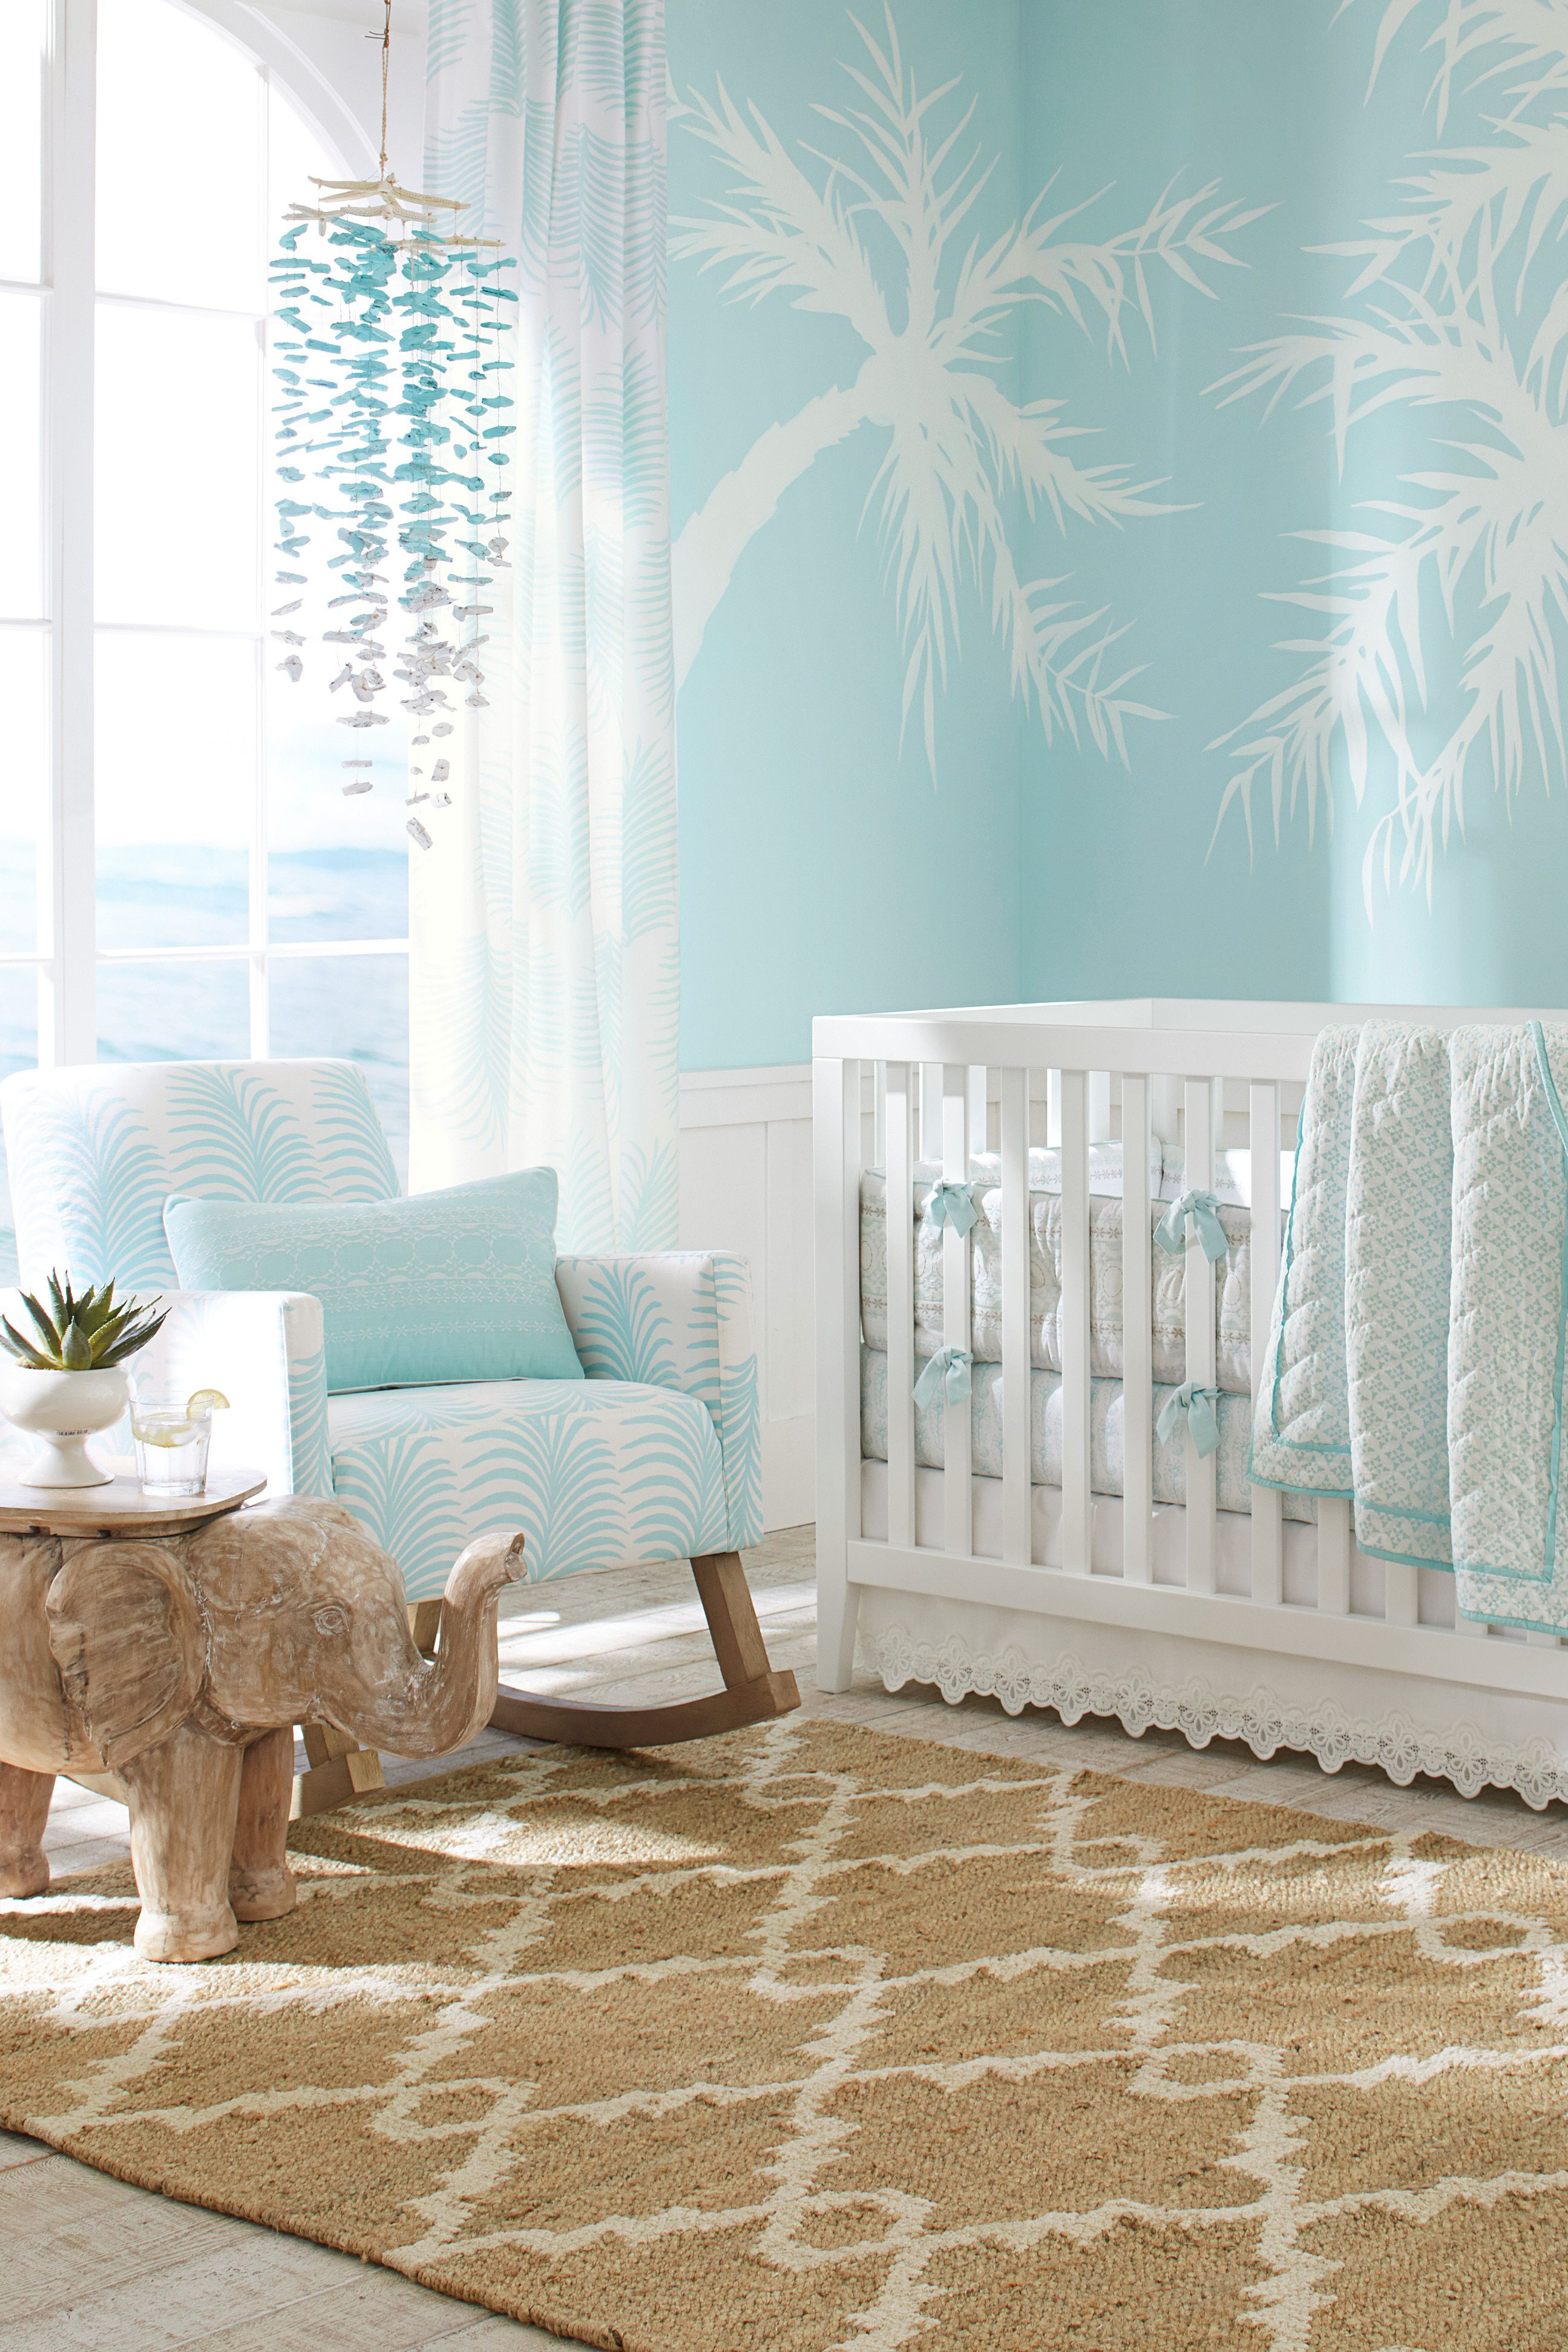 Nursery Room: As A New Parent, You'll Be Spending A Lot Of Time In Your